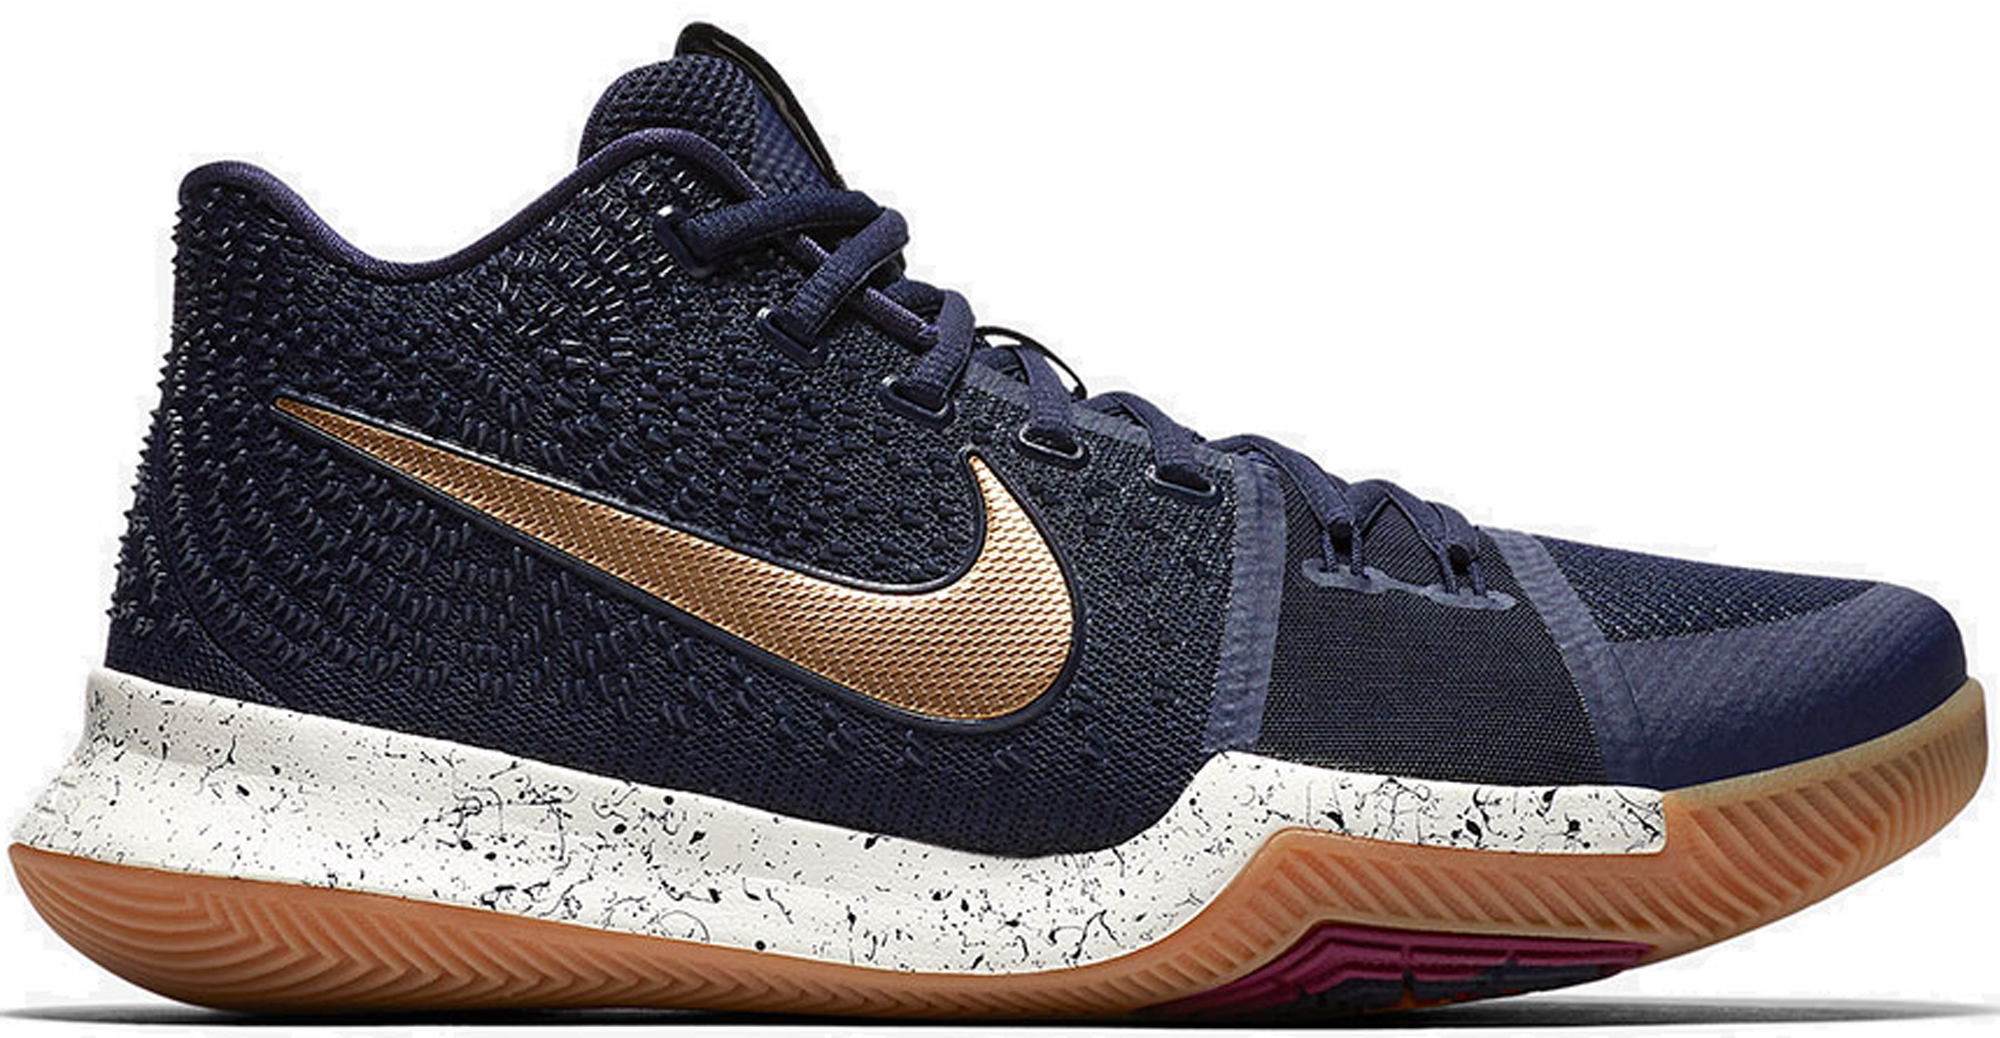 timeless design e09dc 0976f Nike Kyrie 3 Obsidian Metallic Gold 2017 Finals